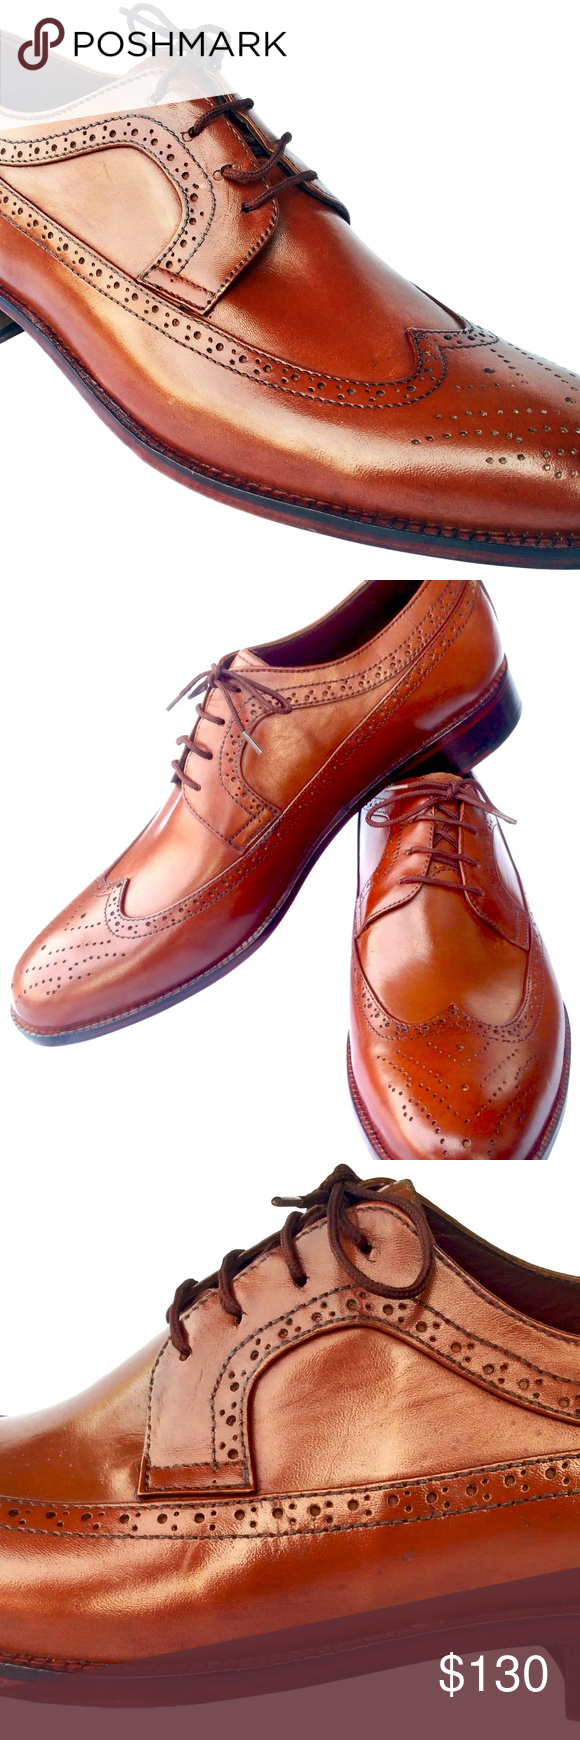 Handmade Oxford Brook Style Brown Leather Shoes. These Johny Weber oxford brook ...